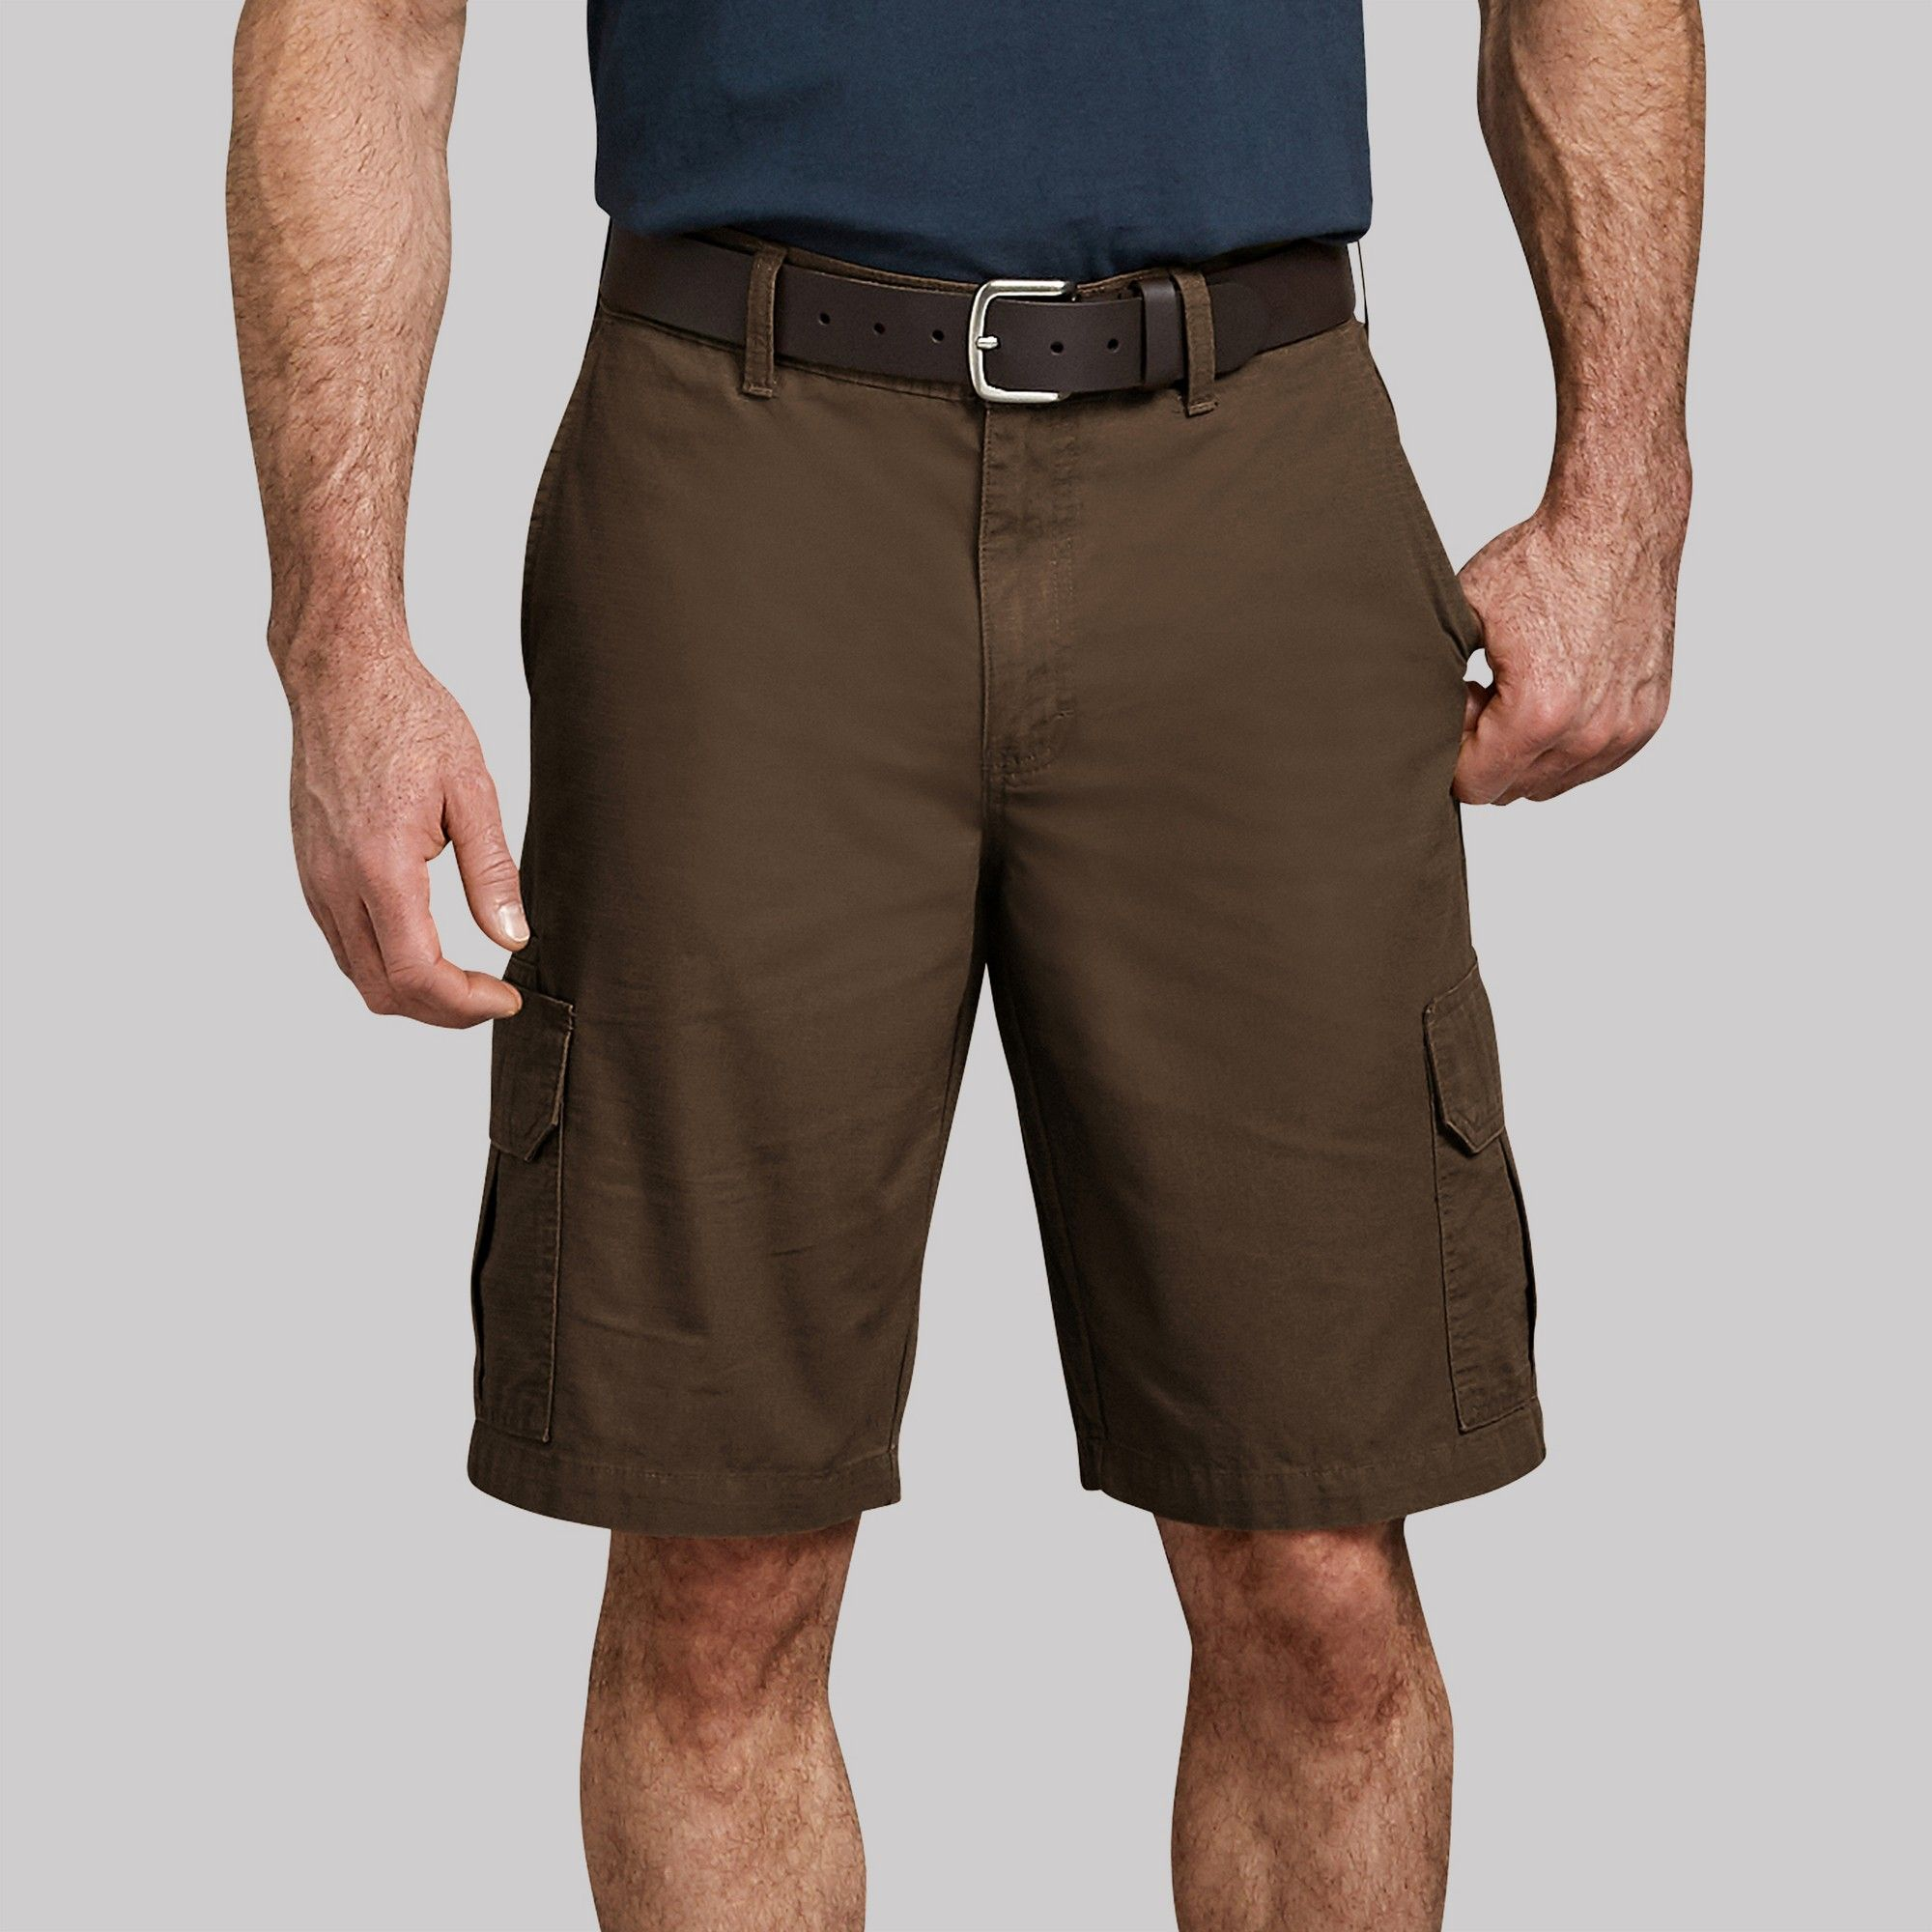 721ac9158b Dickies Men's Big & Tall 11 Relaxed Fit Lightweight Ripstop Cargo Shorts -  Brown 44